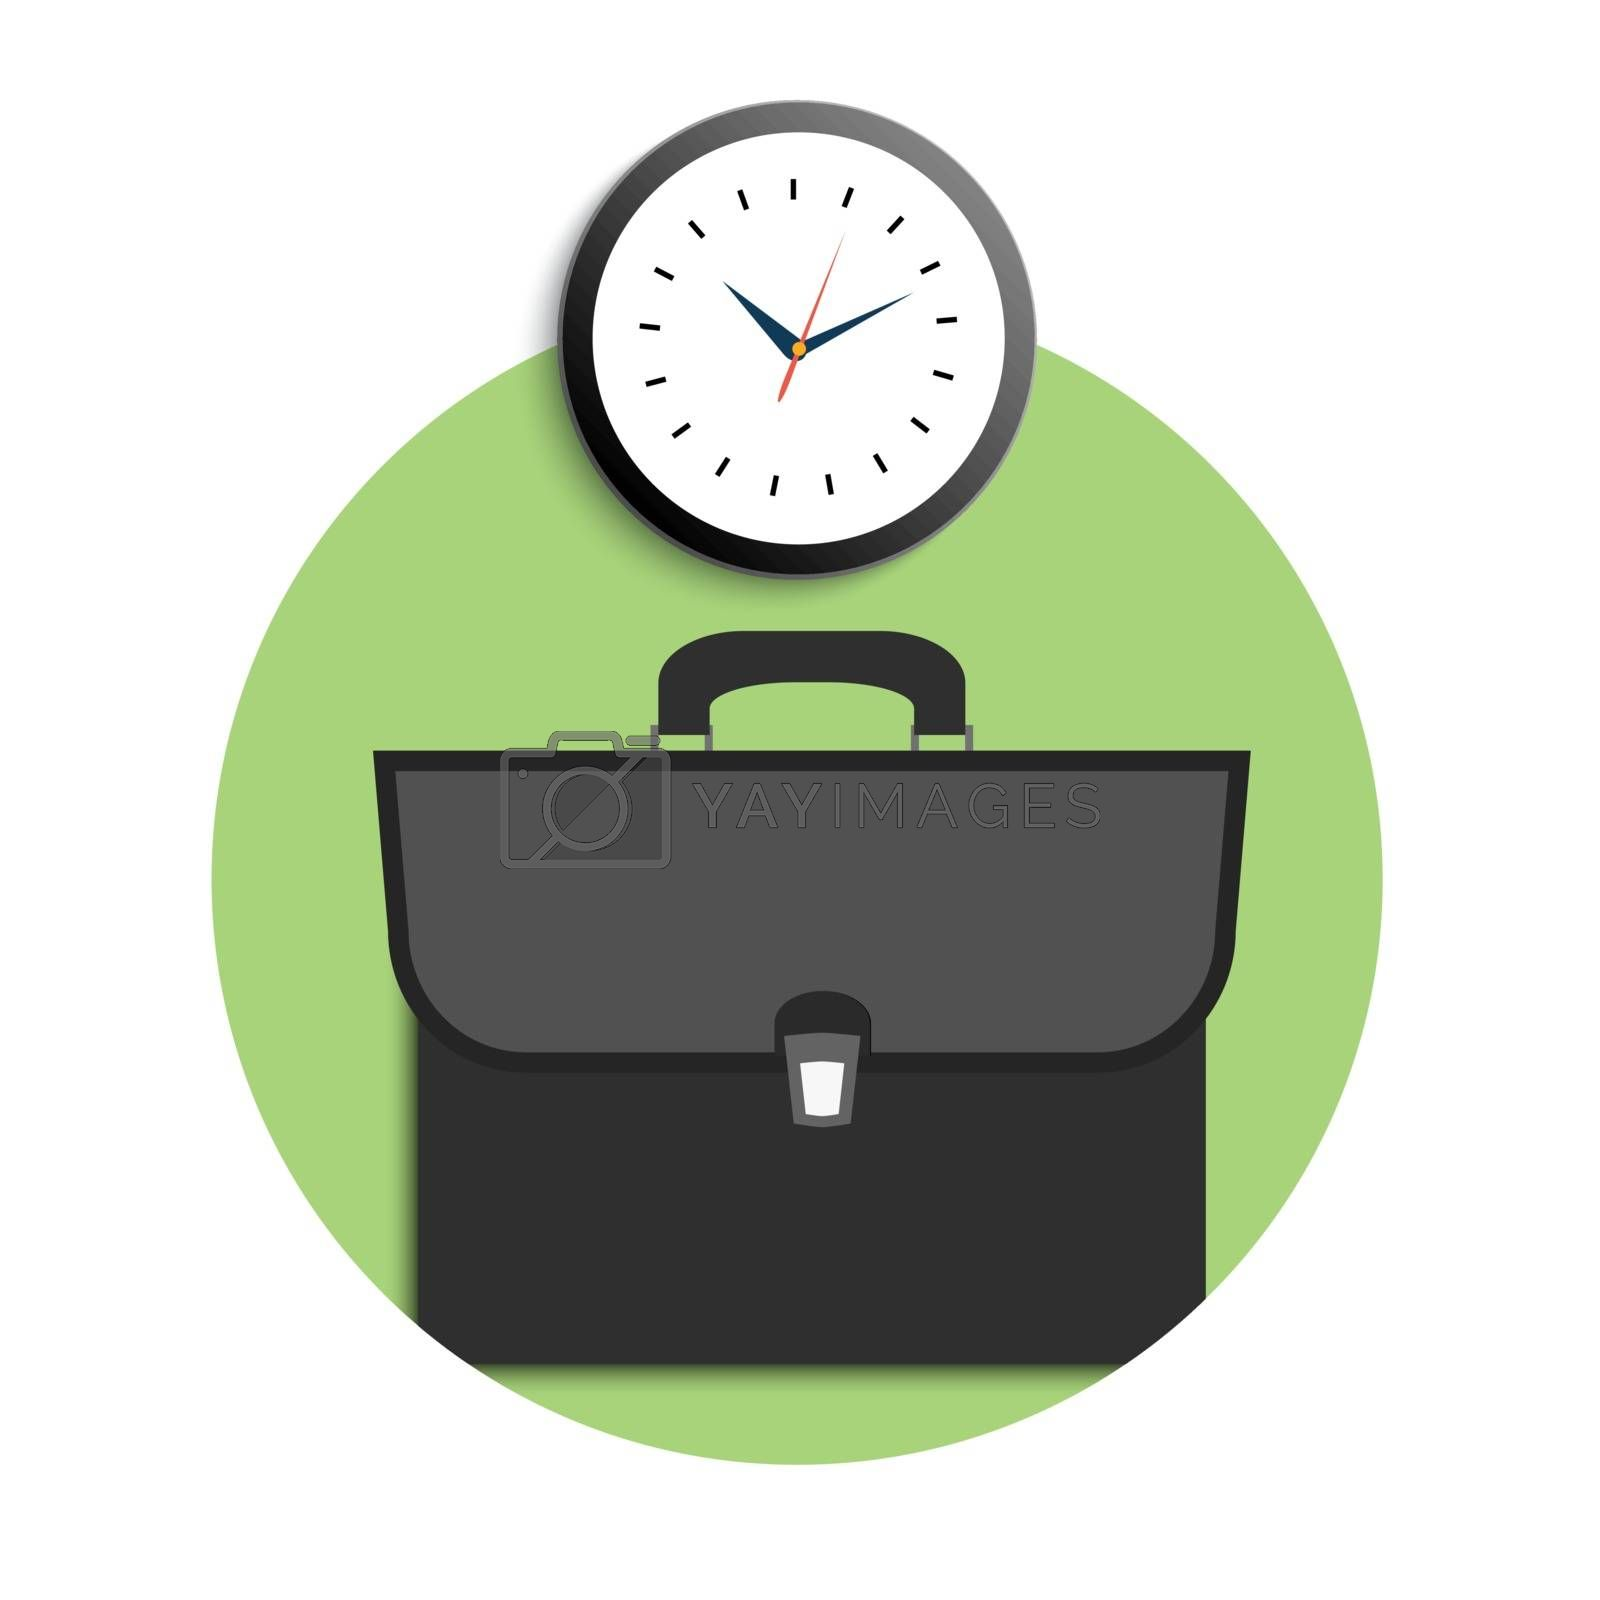 Briefcase and clock icons. Business concept for office workers. Time to come to work